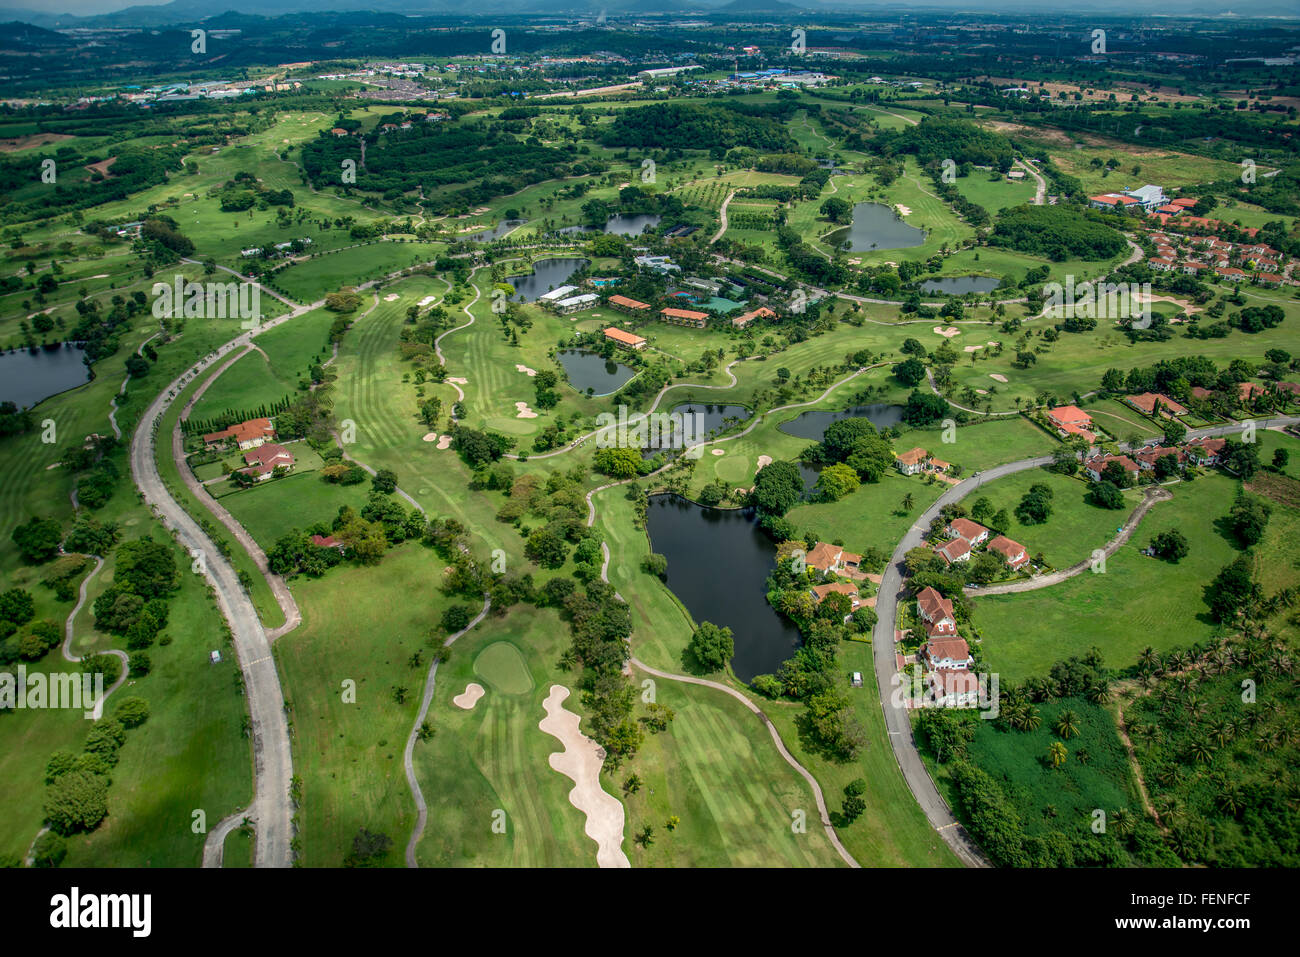 Golf course club aerial photography in Thailand - Stock Image